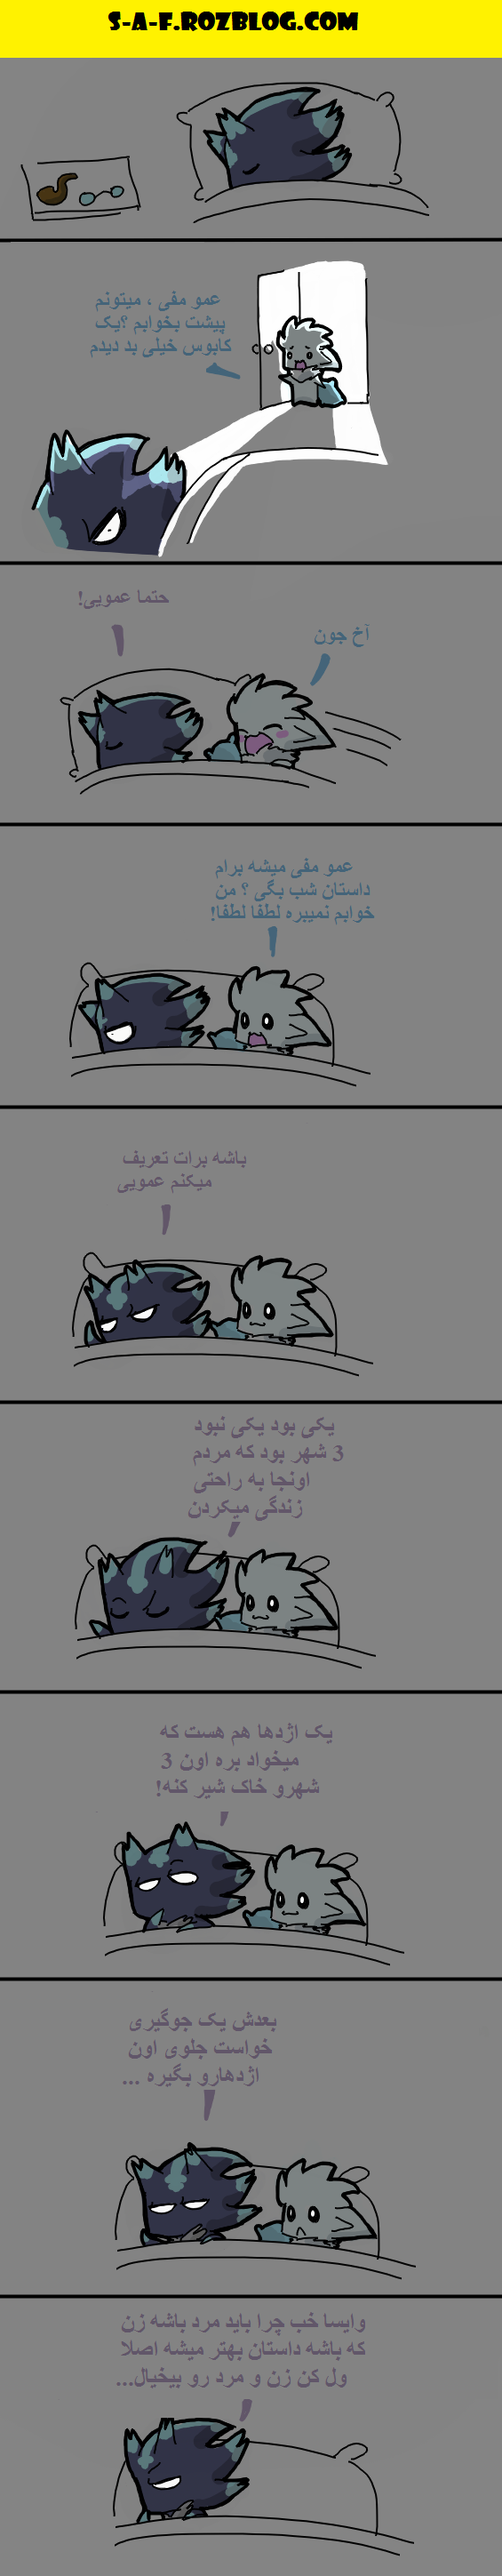 http://rozup.ir/view/1161155/bedtime_story_1_by_faezza.png